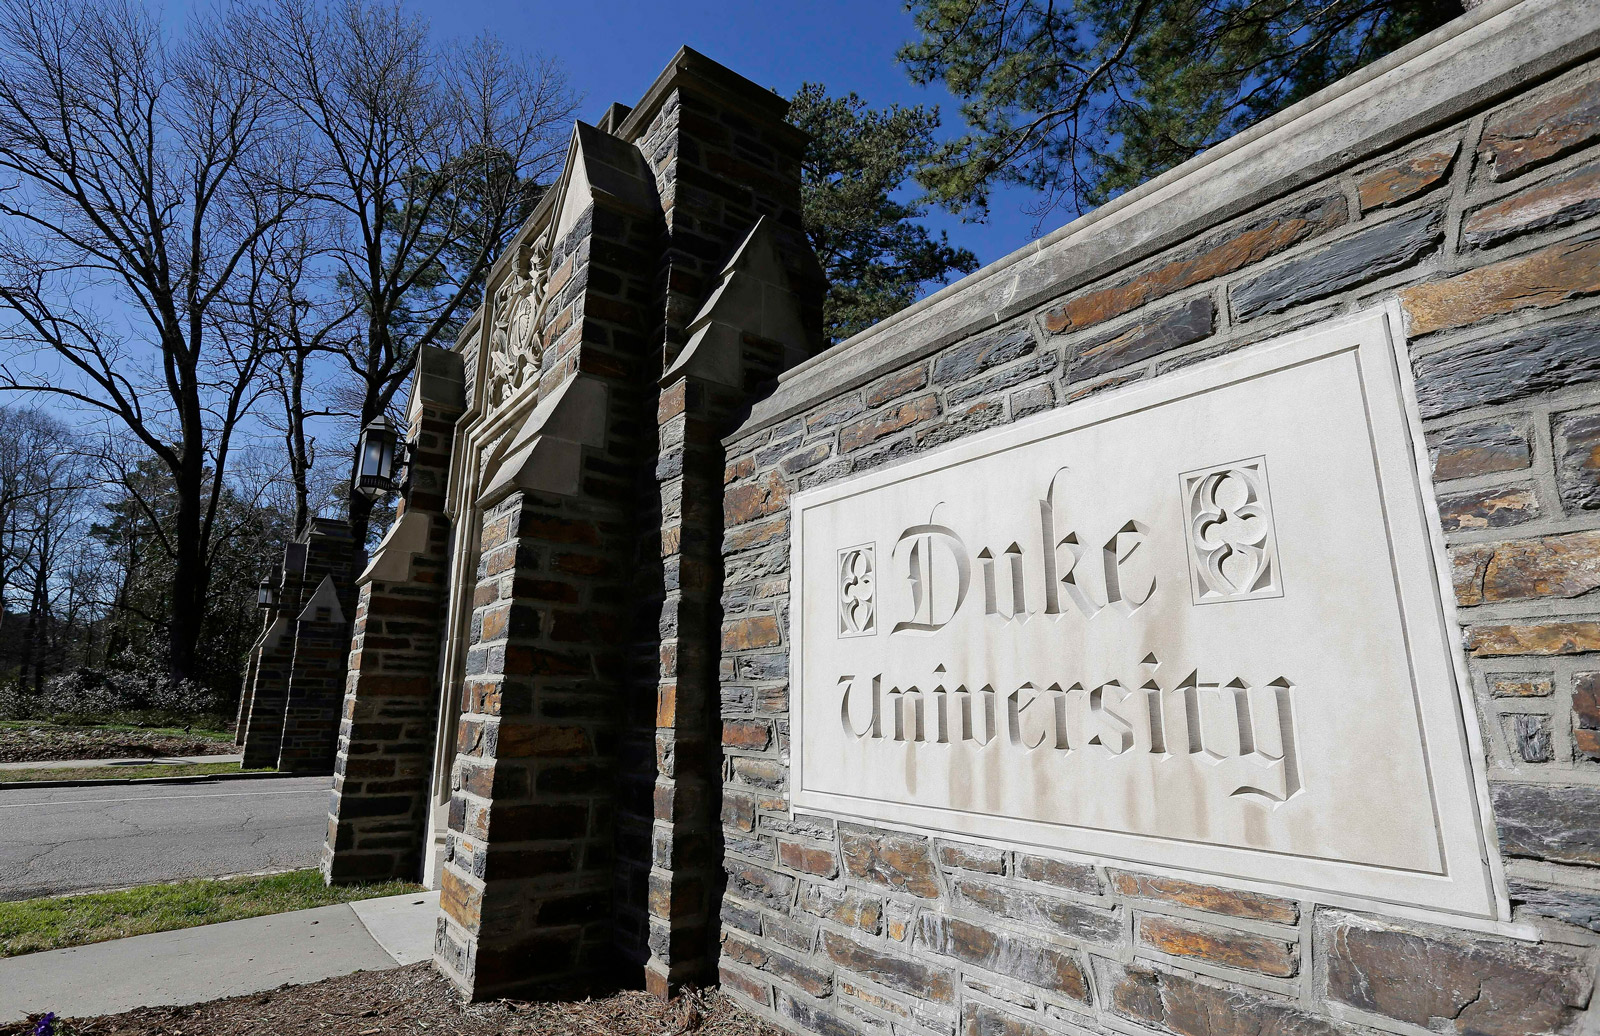 The entrance to the main Duke University campus is shown in Durham, North Carolina, on January 28, 2019.